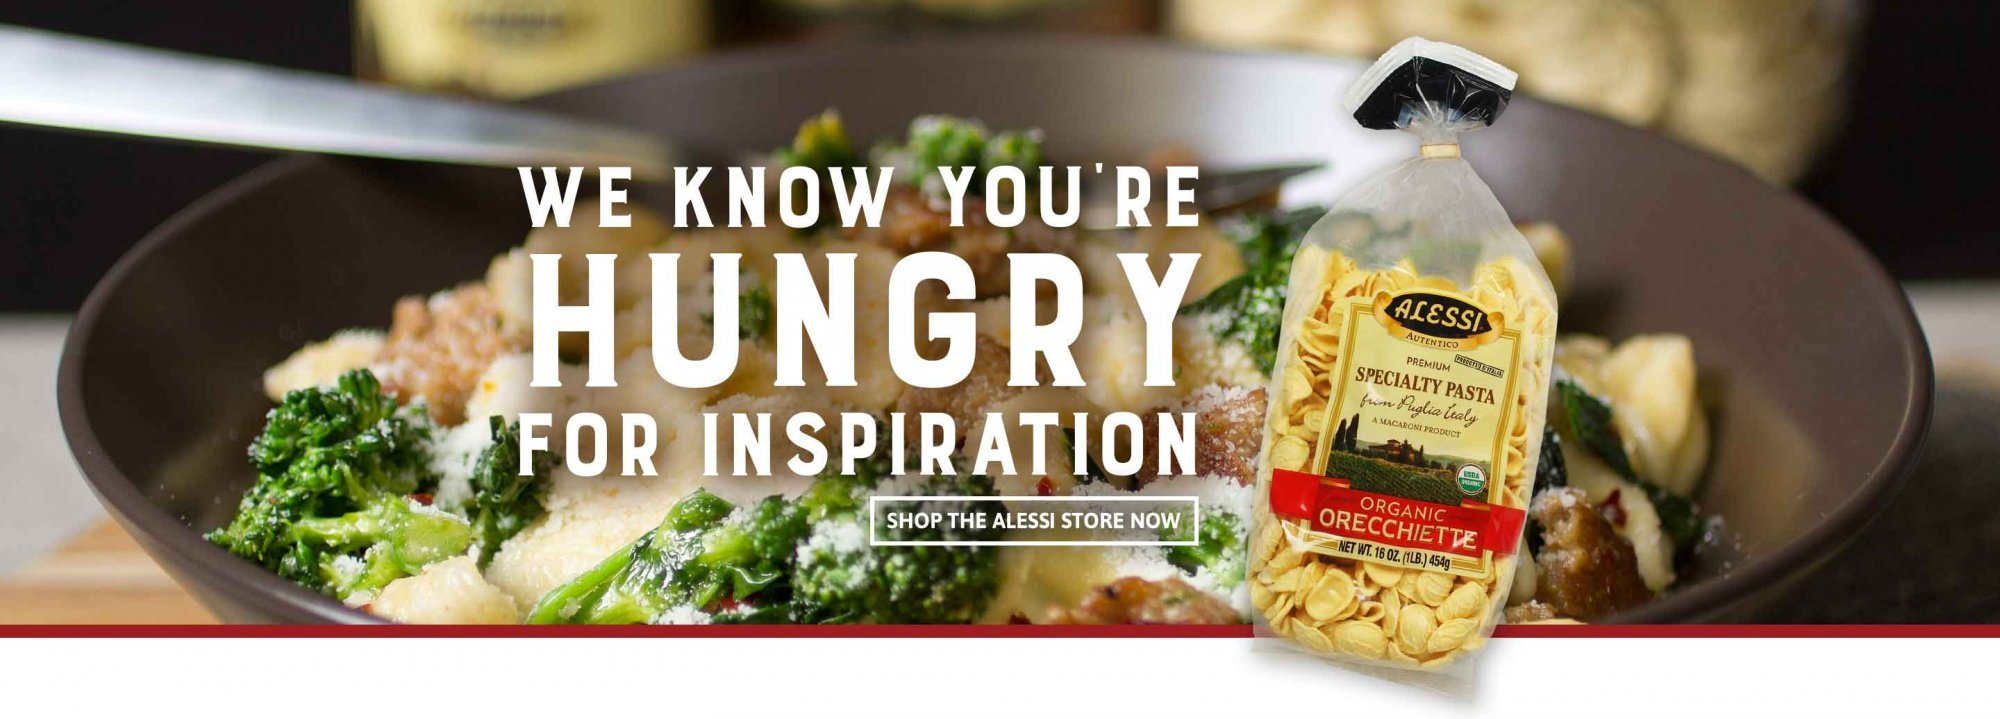 We know you're hungry for inspiration